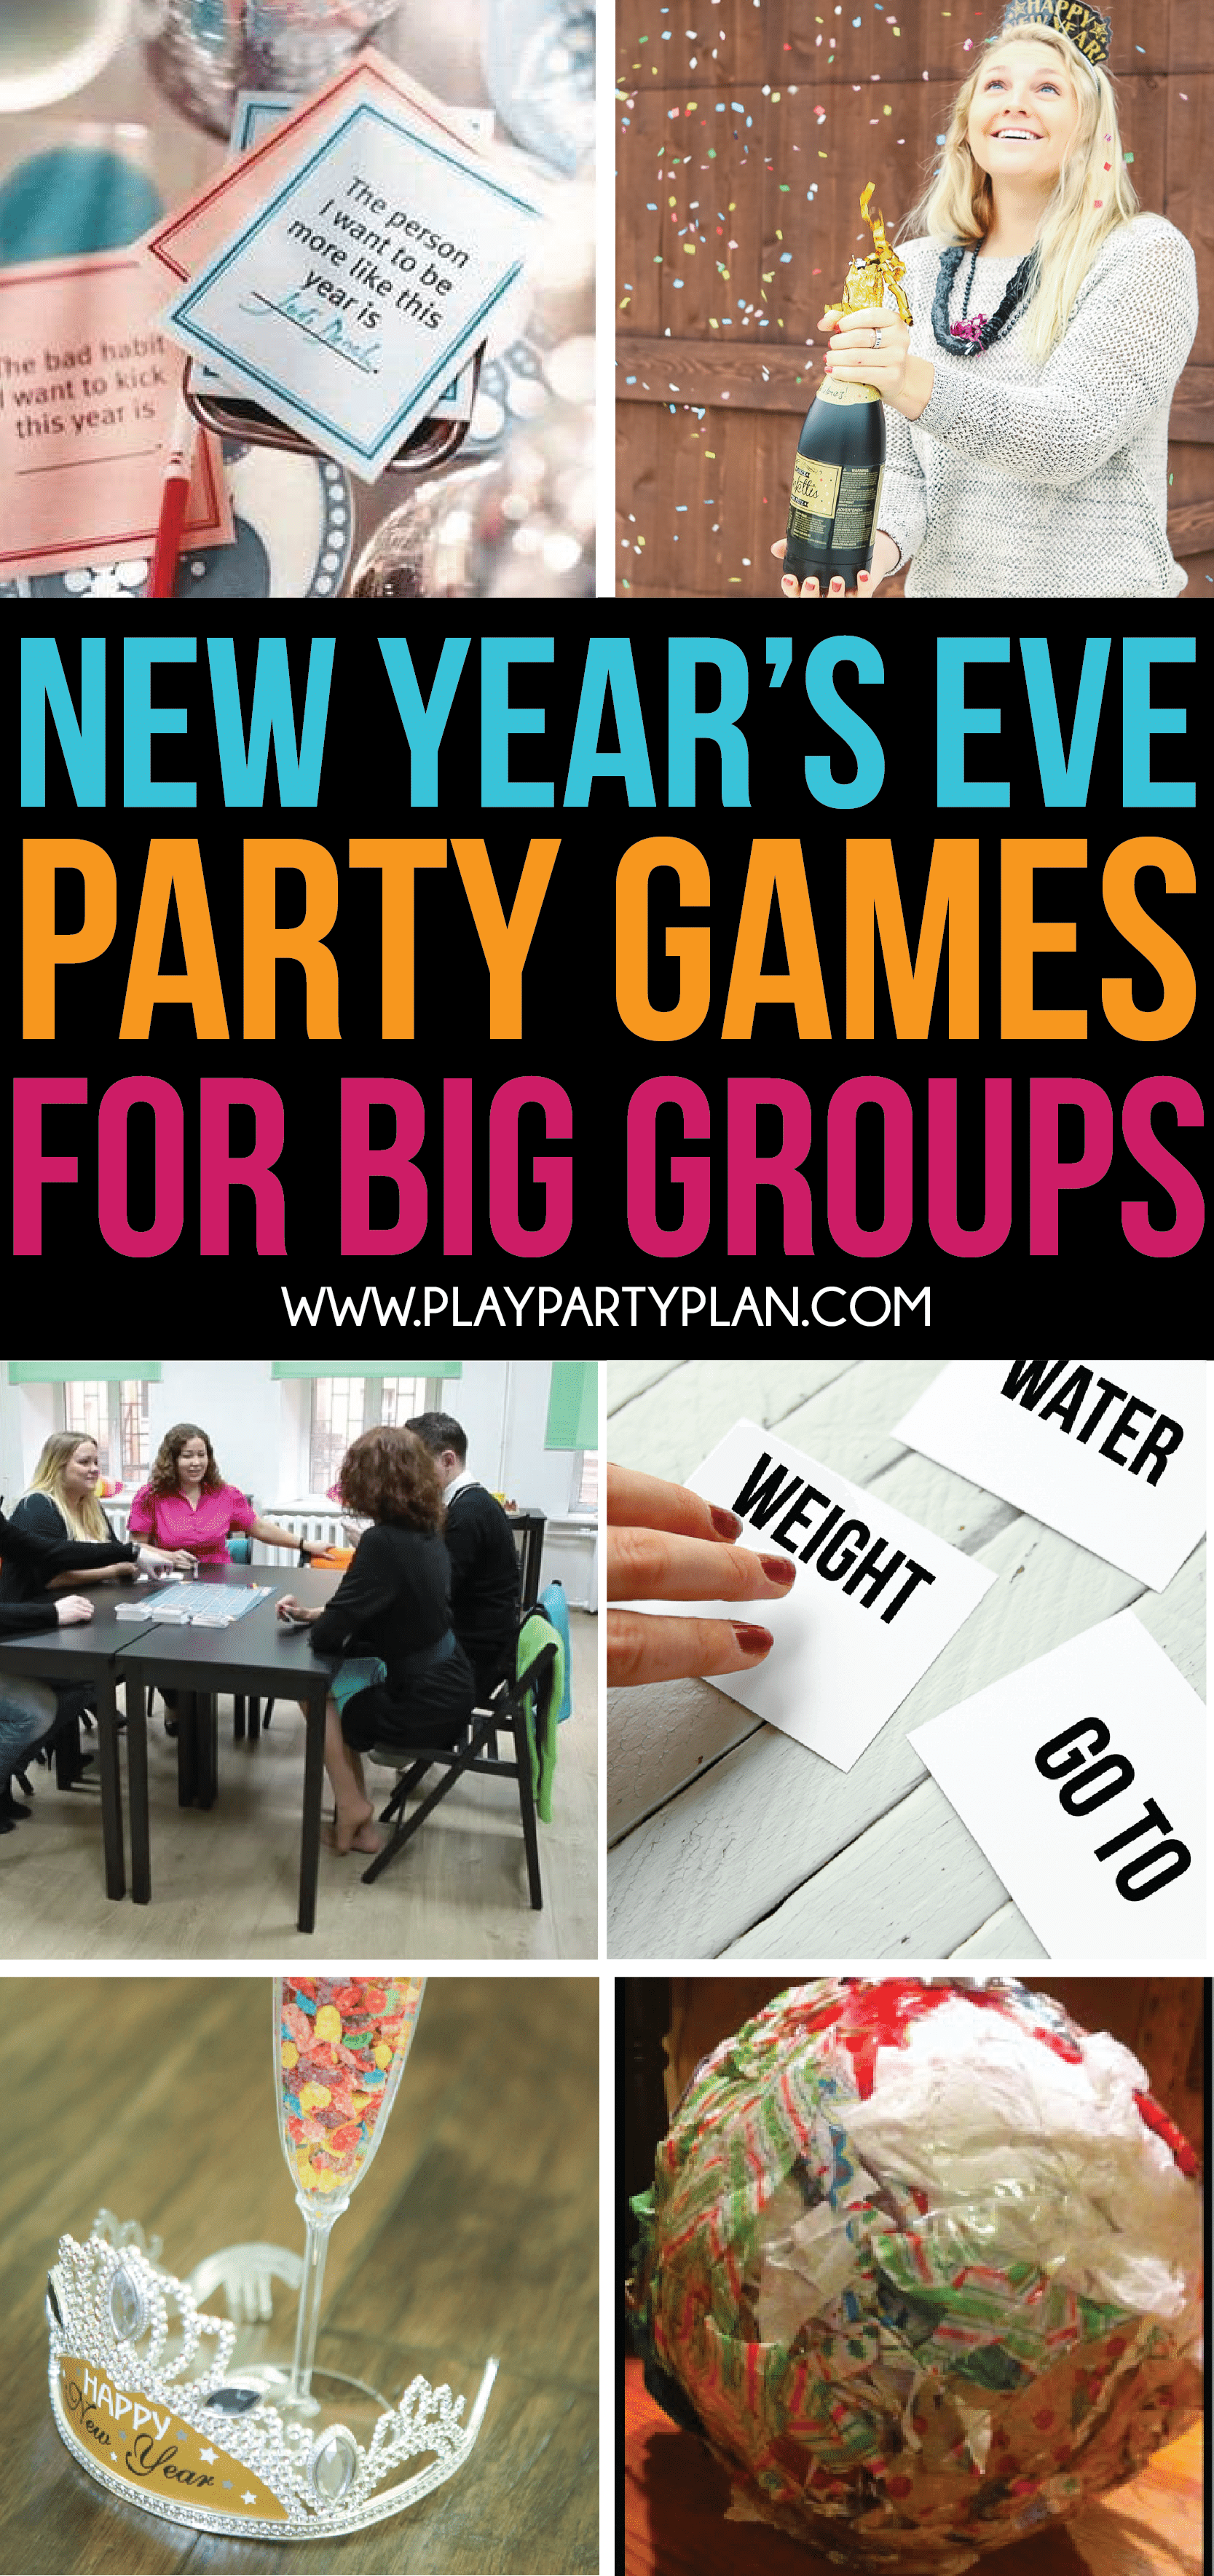 20 of the Best New Year's Eve Games - Play Party Plan